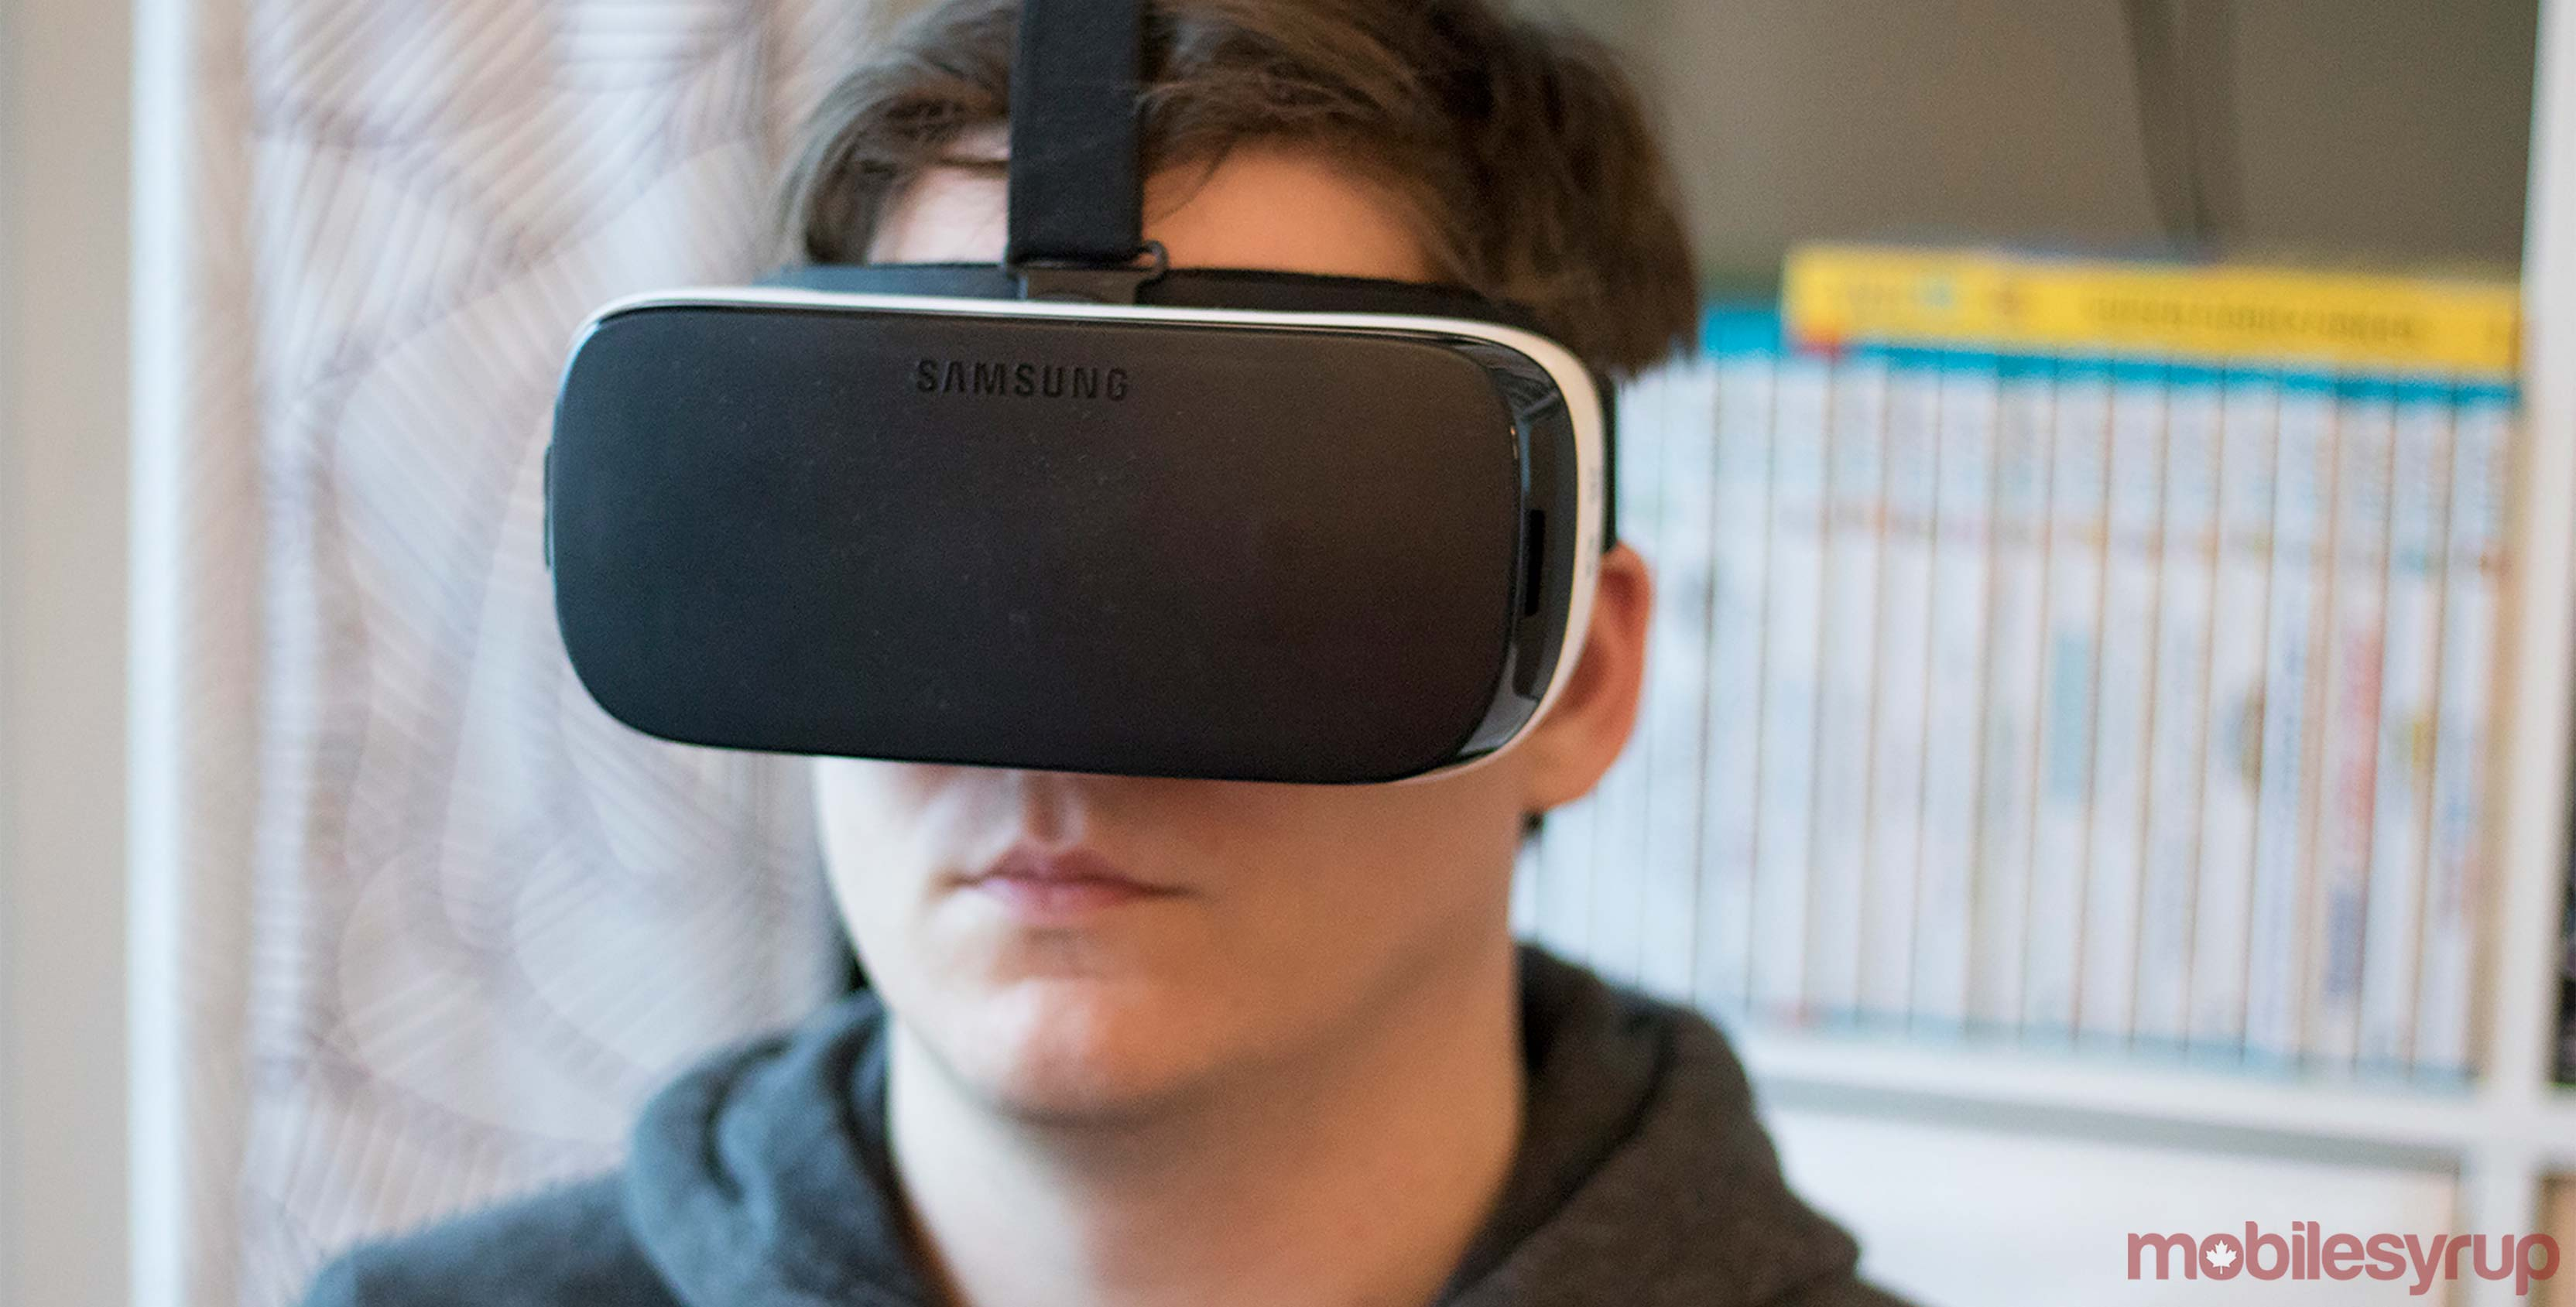 Samsung Gear VR on head